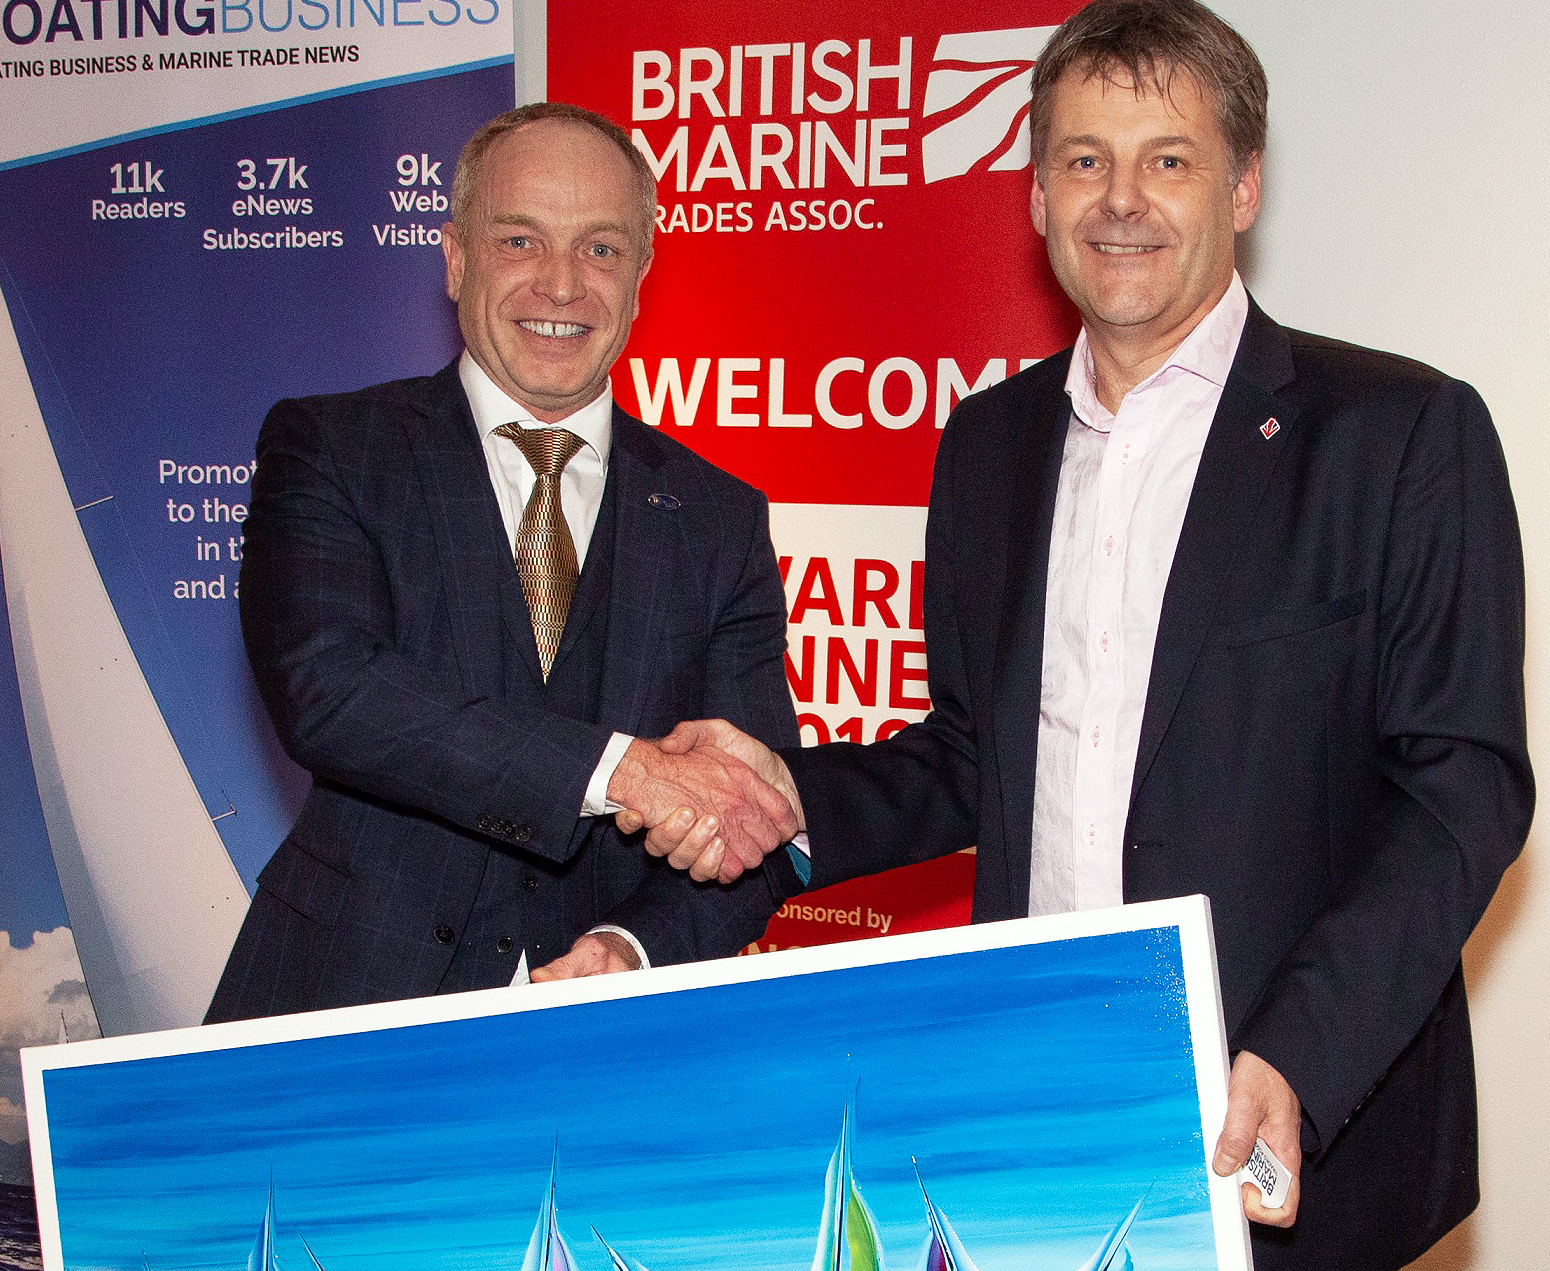 Richard W. Roberts receives his award from Paul Martin, chairman of the British Yacht Federation